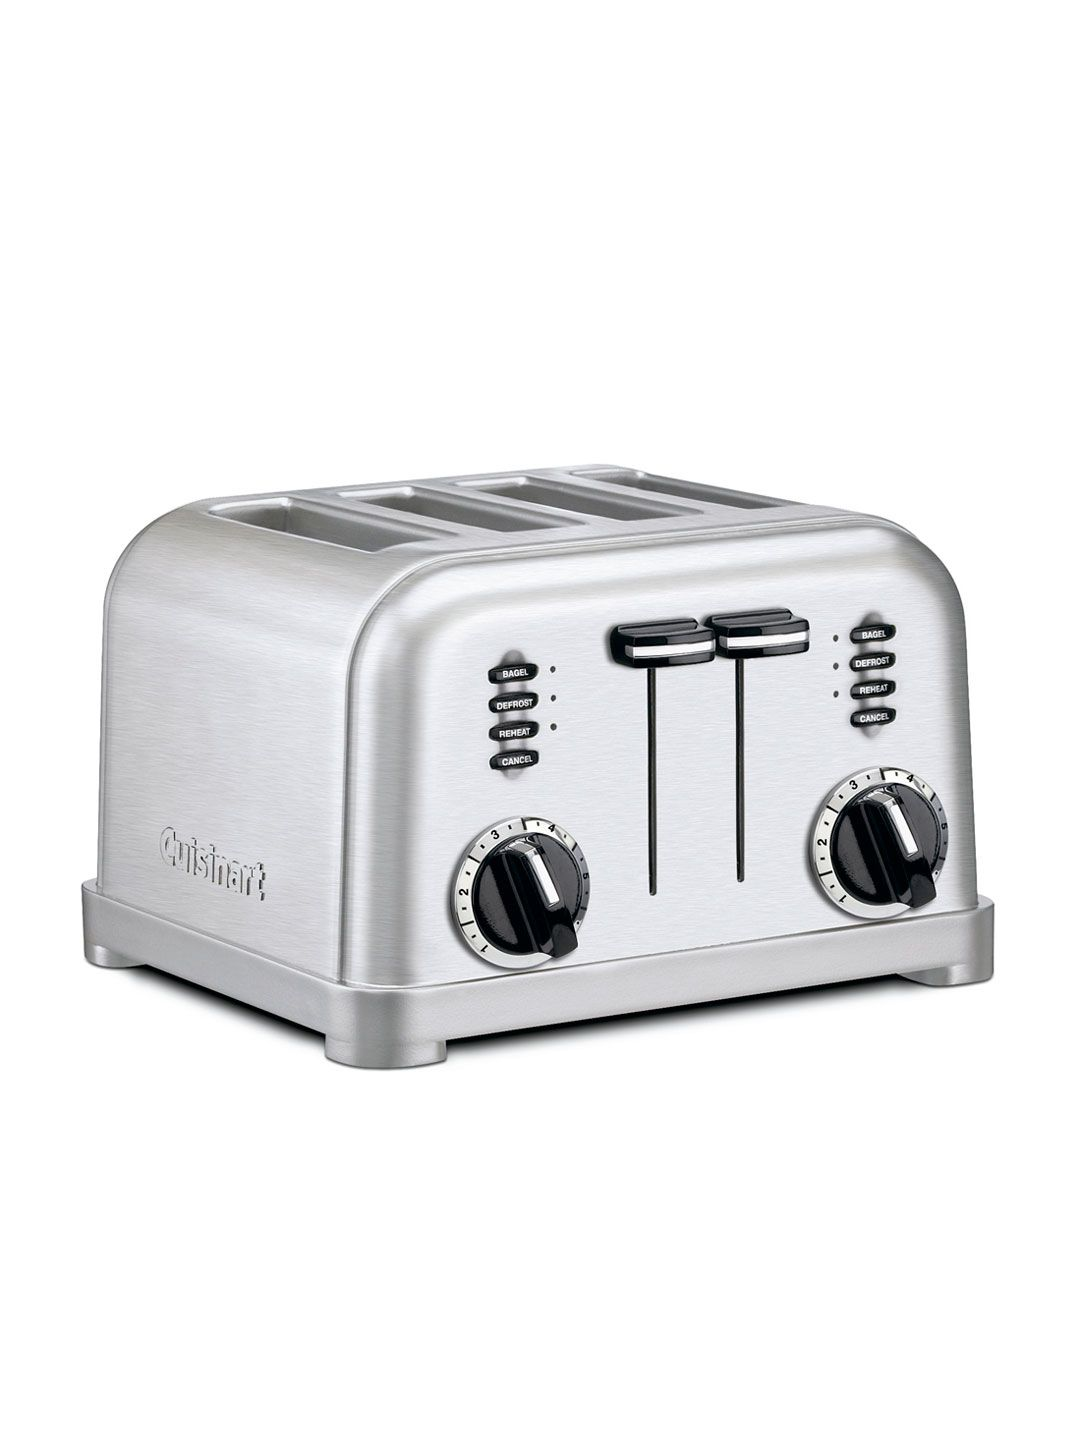 cuisinart neweggflash metal product classic com cpt toaster slice red